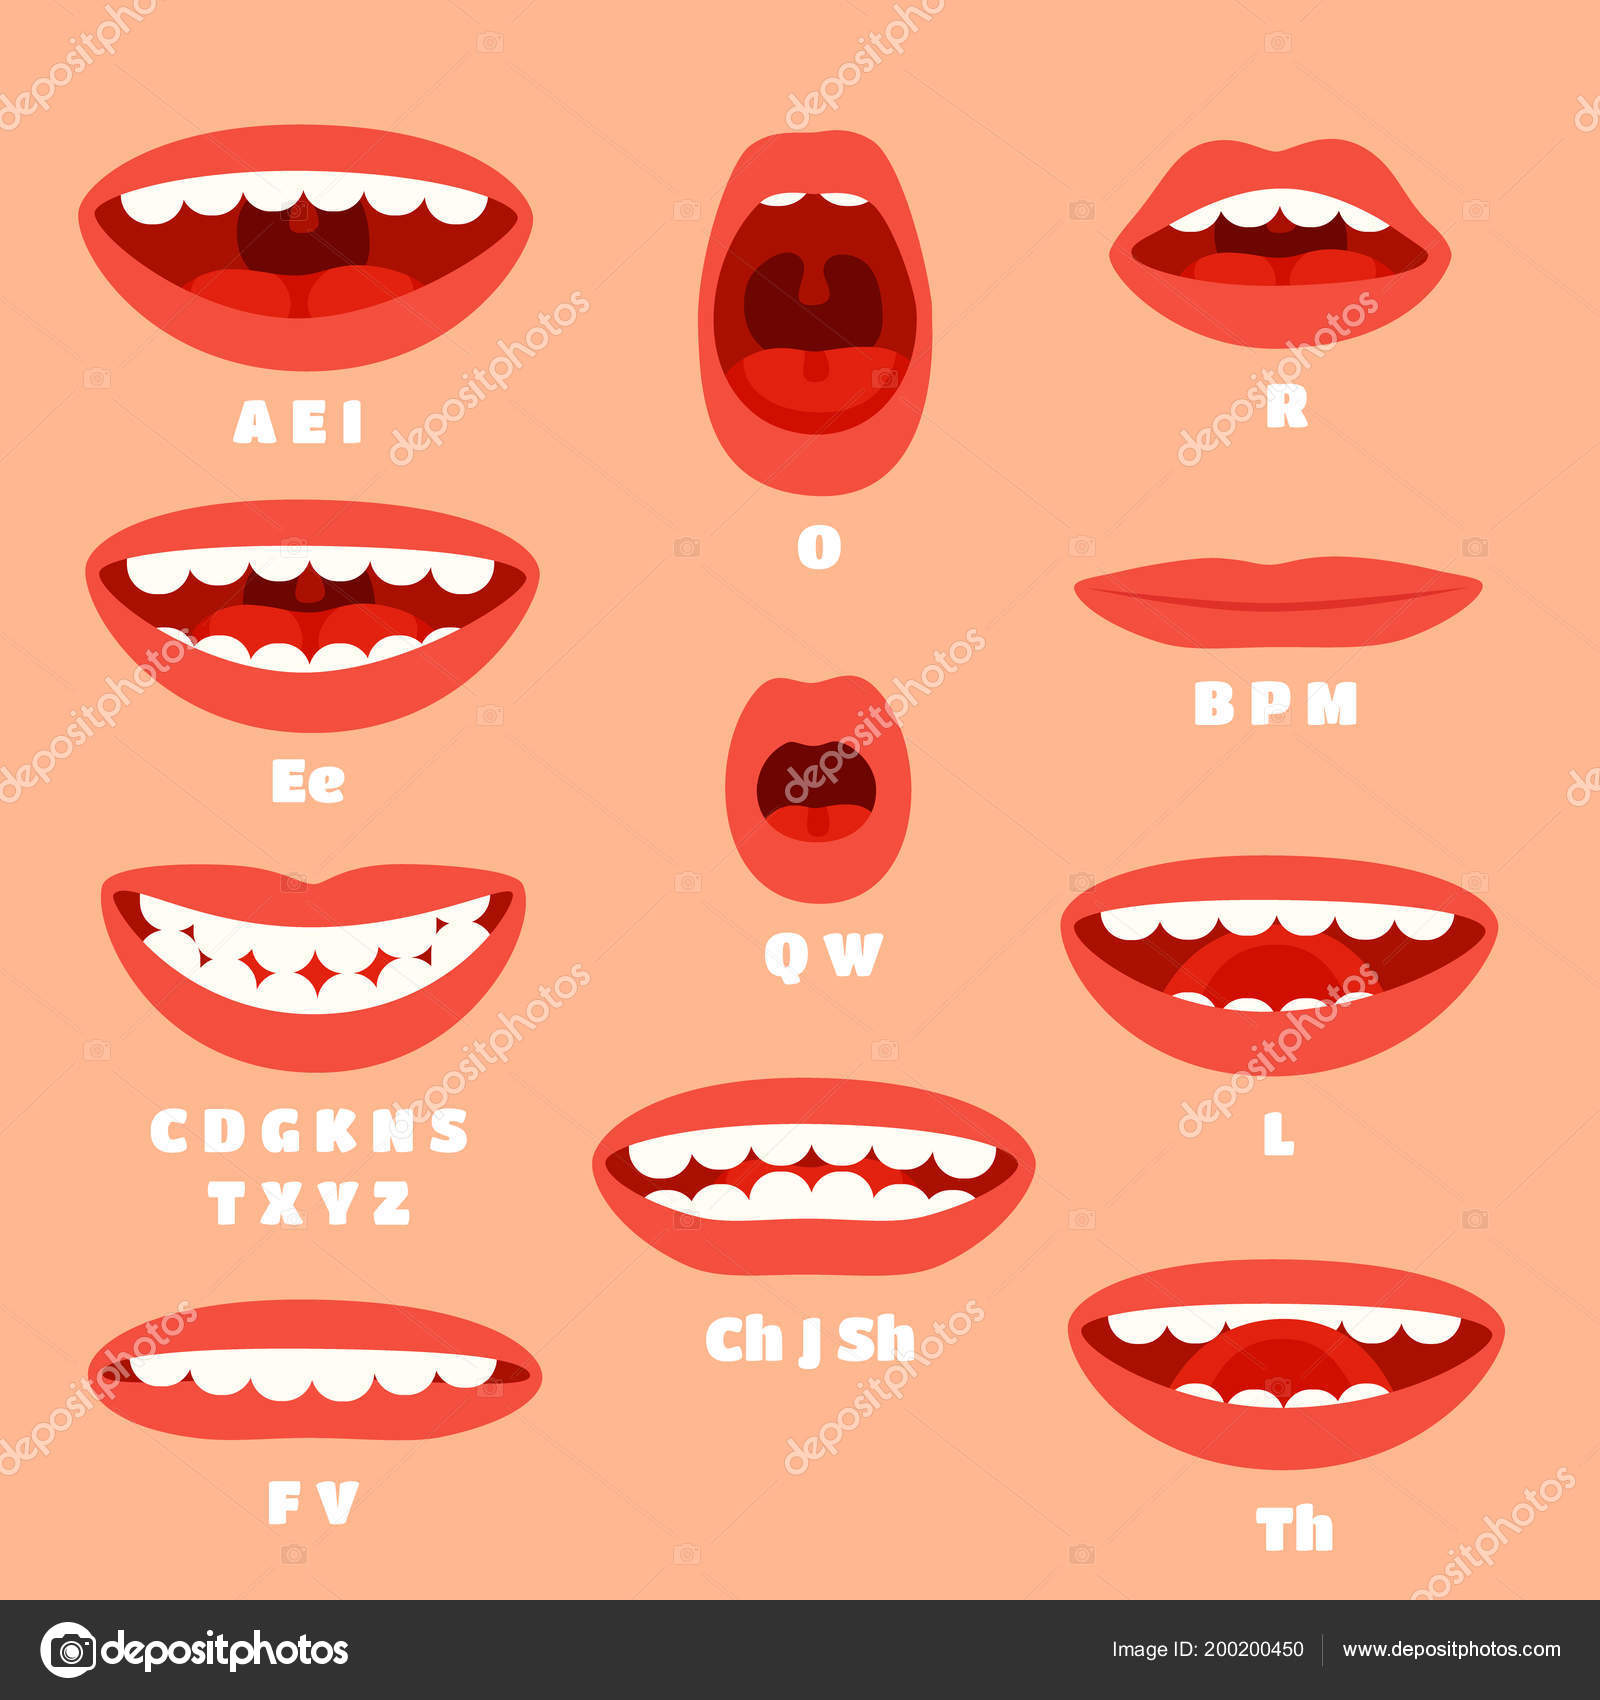 Weston: How Parents Can Help Facilitate Articulation Skills Mouth pictures for articulation